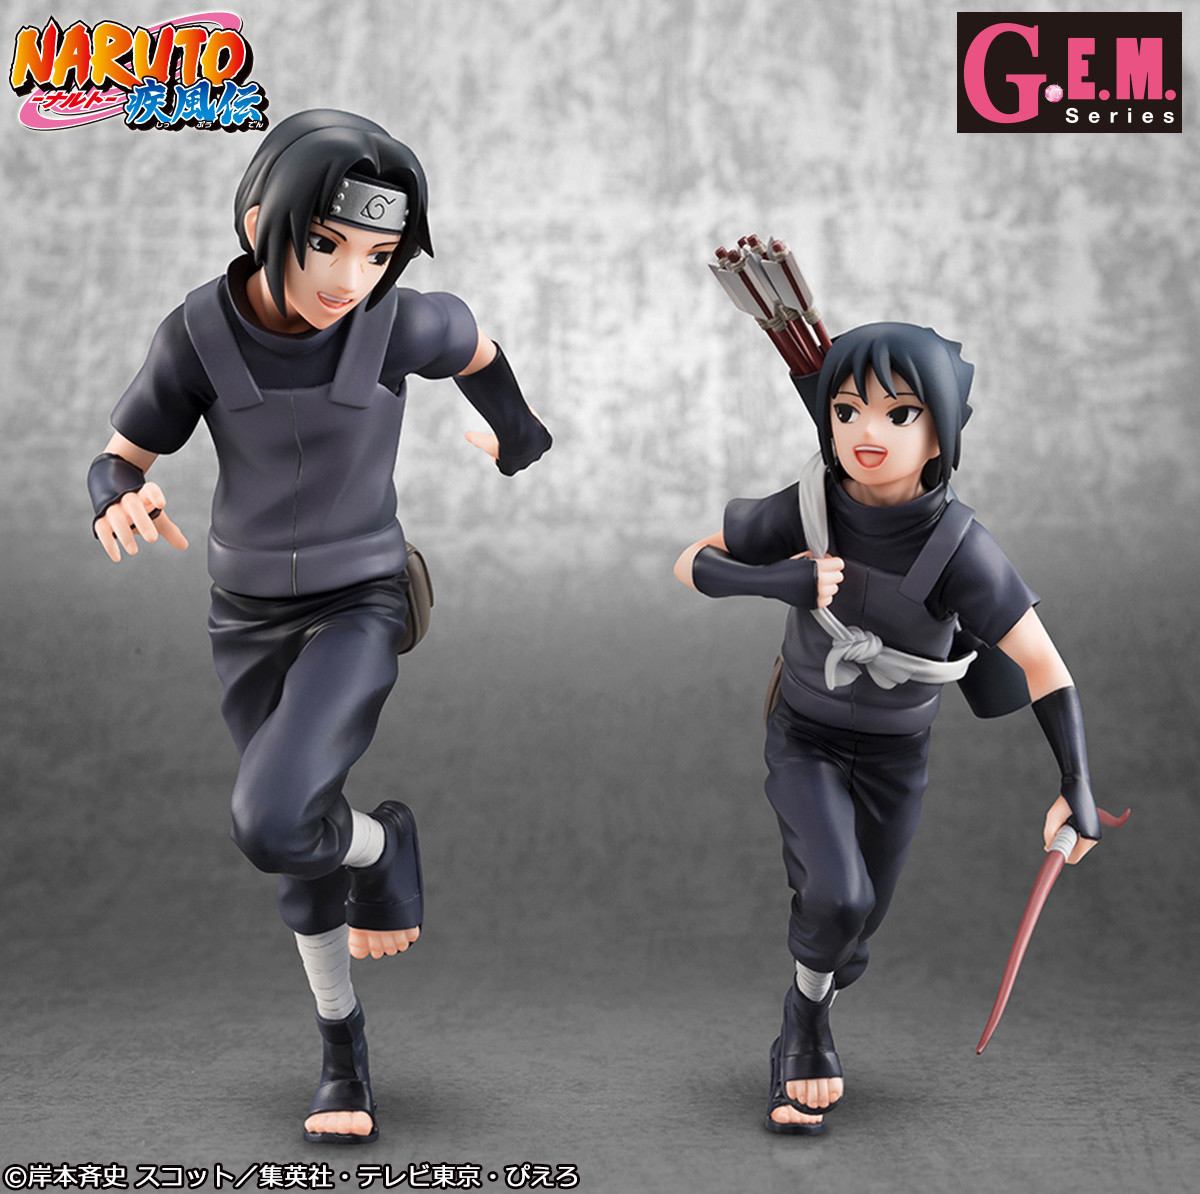 Anime News New Naruto Anime Movie Featuring Naruto S: Itachi And Sasuke's Childhood Immortalized In New Figure